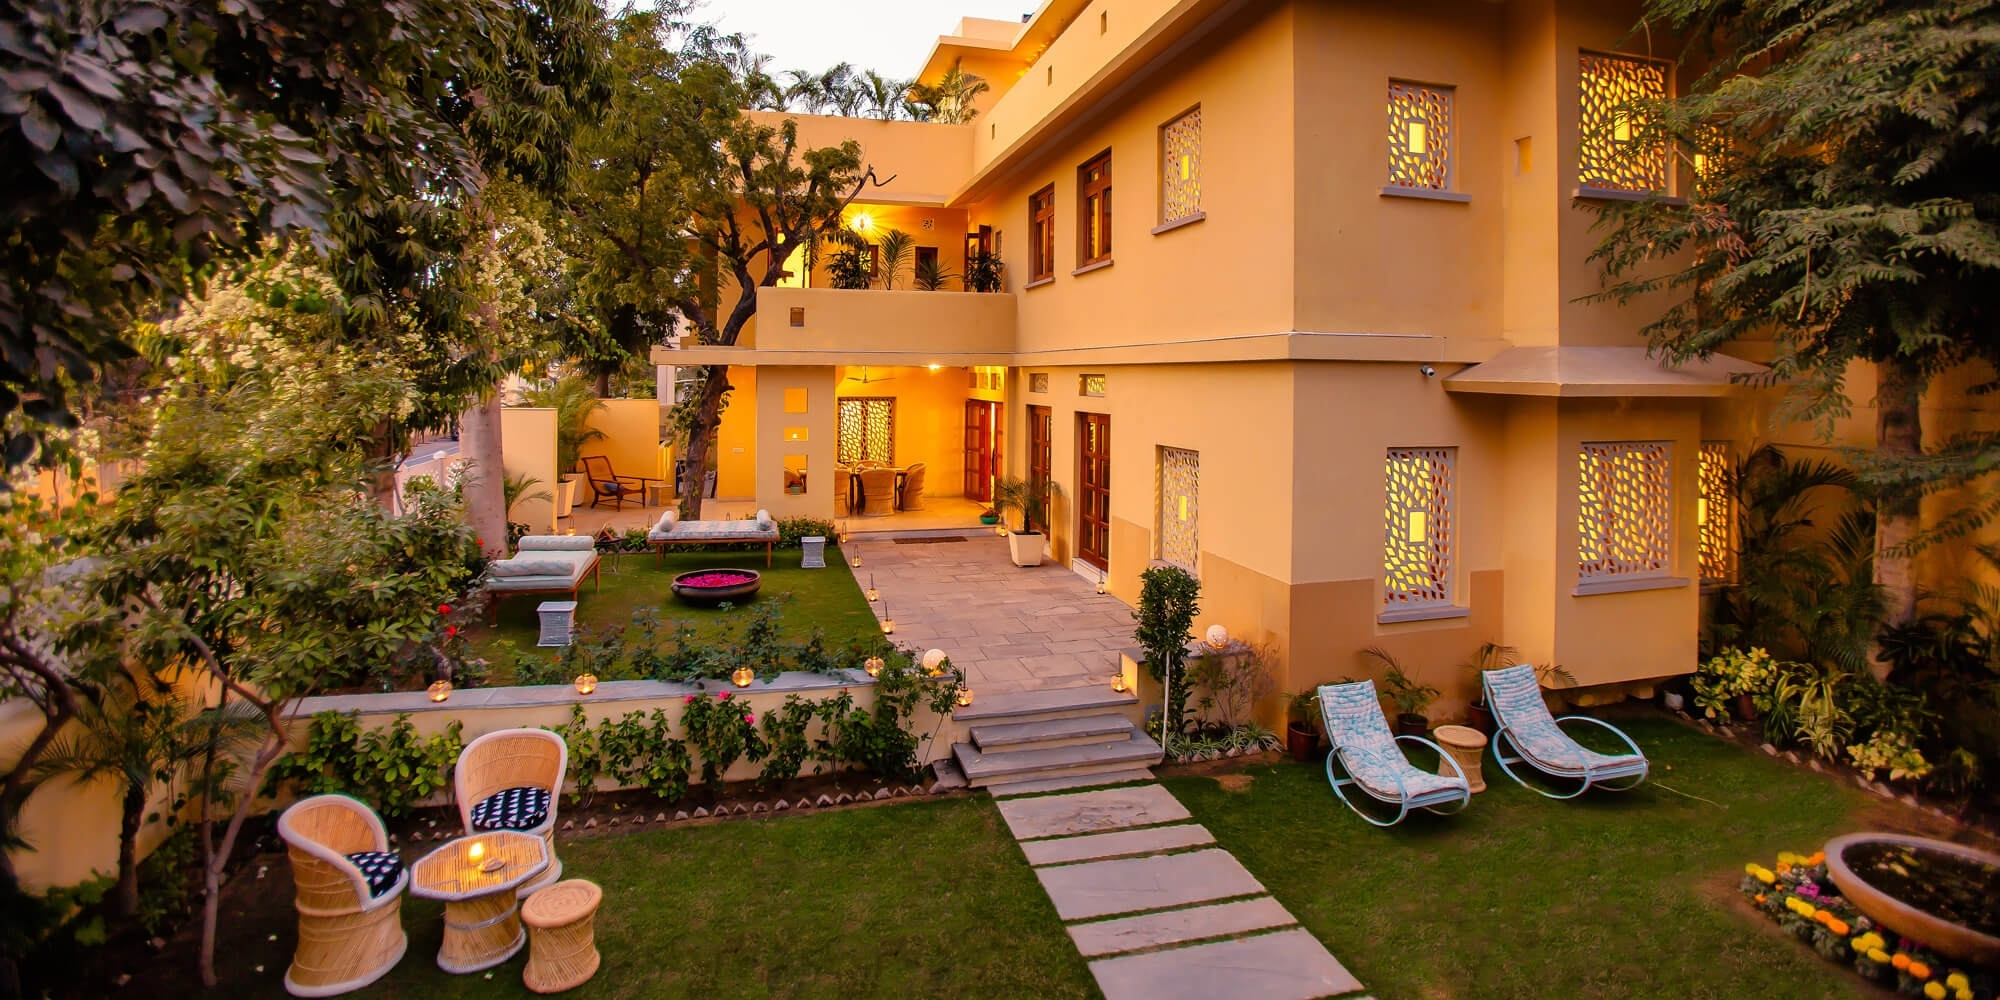 28 Kothi, Civil Lines, Jaipur, Rajasthan Hotel Reviews within Anokhi Garden Guest House And Cafe